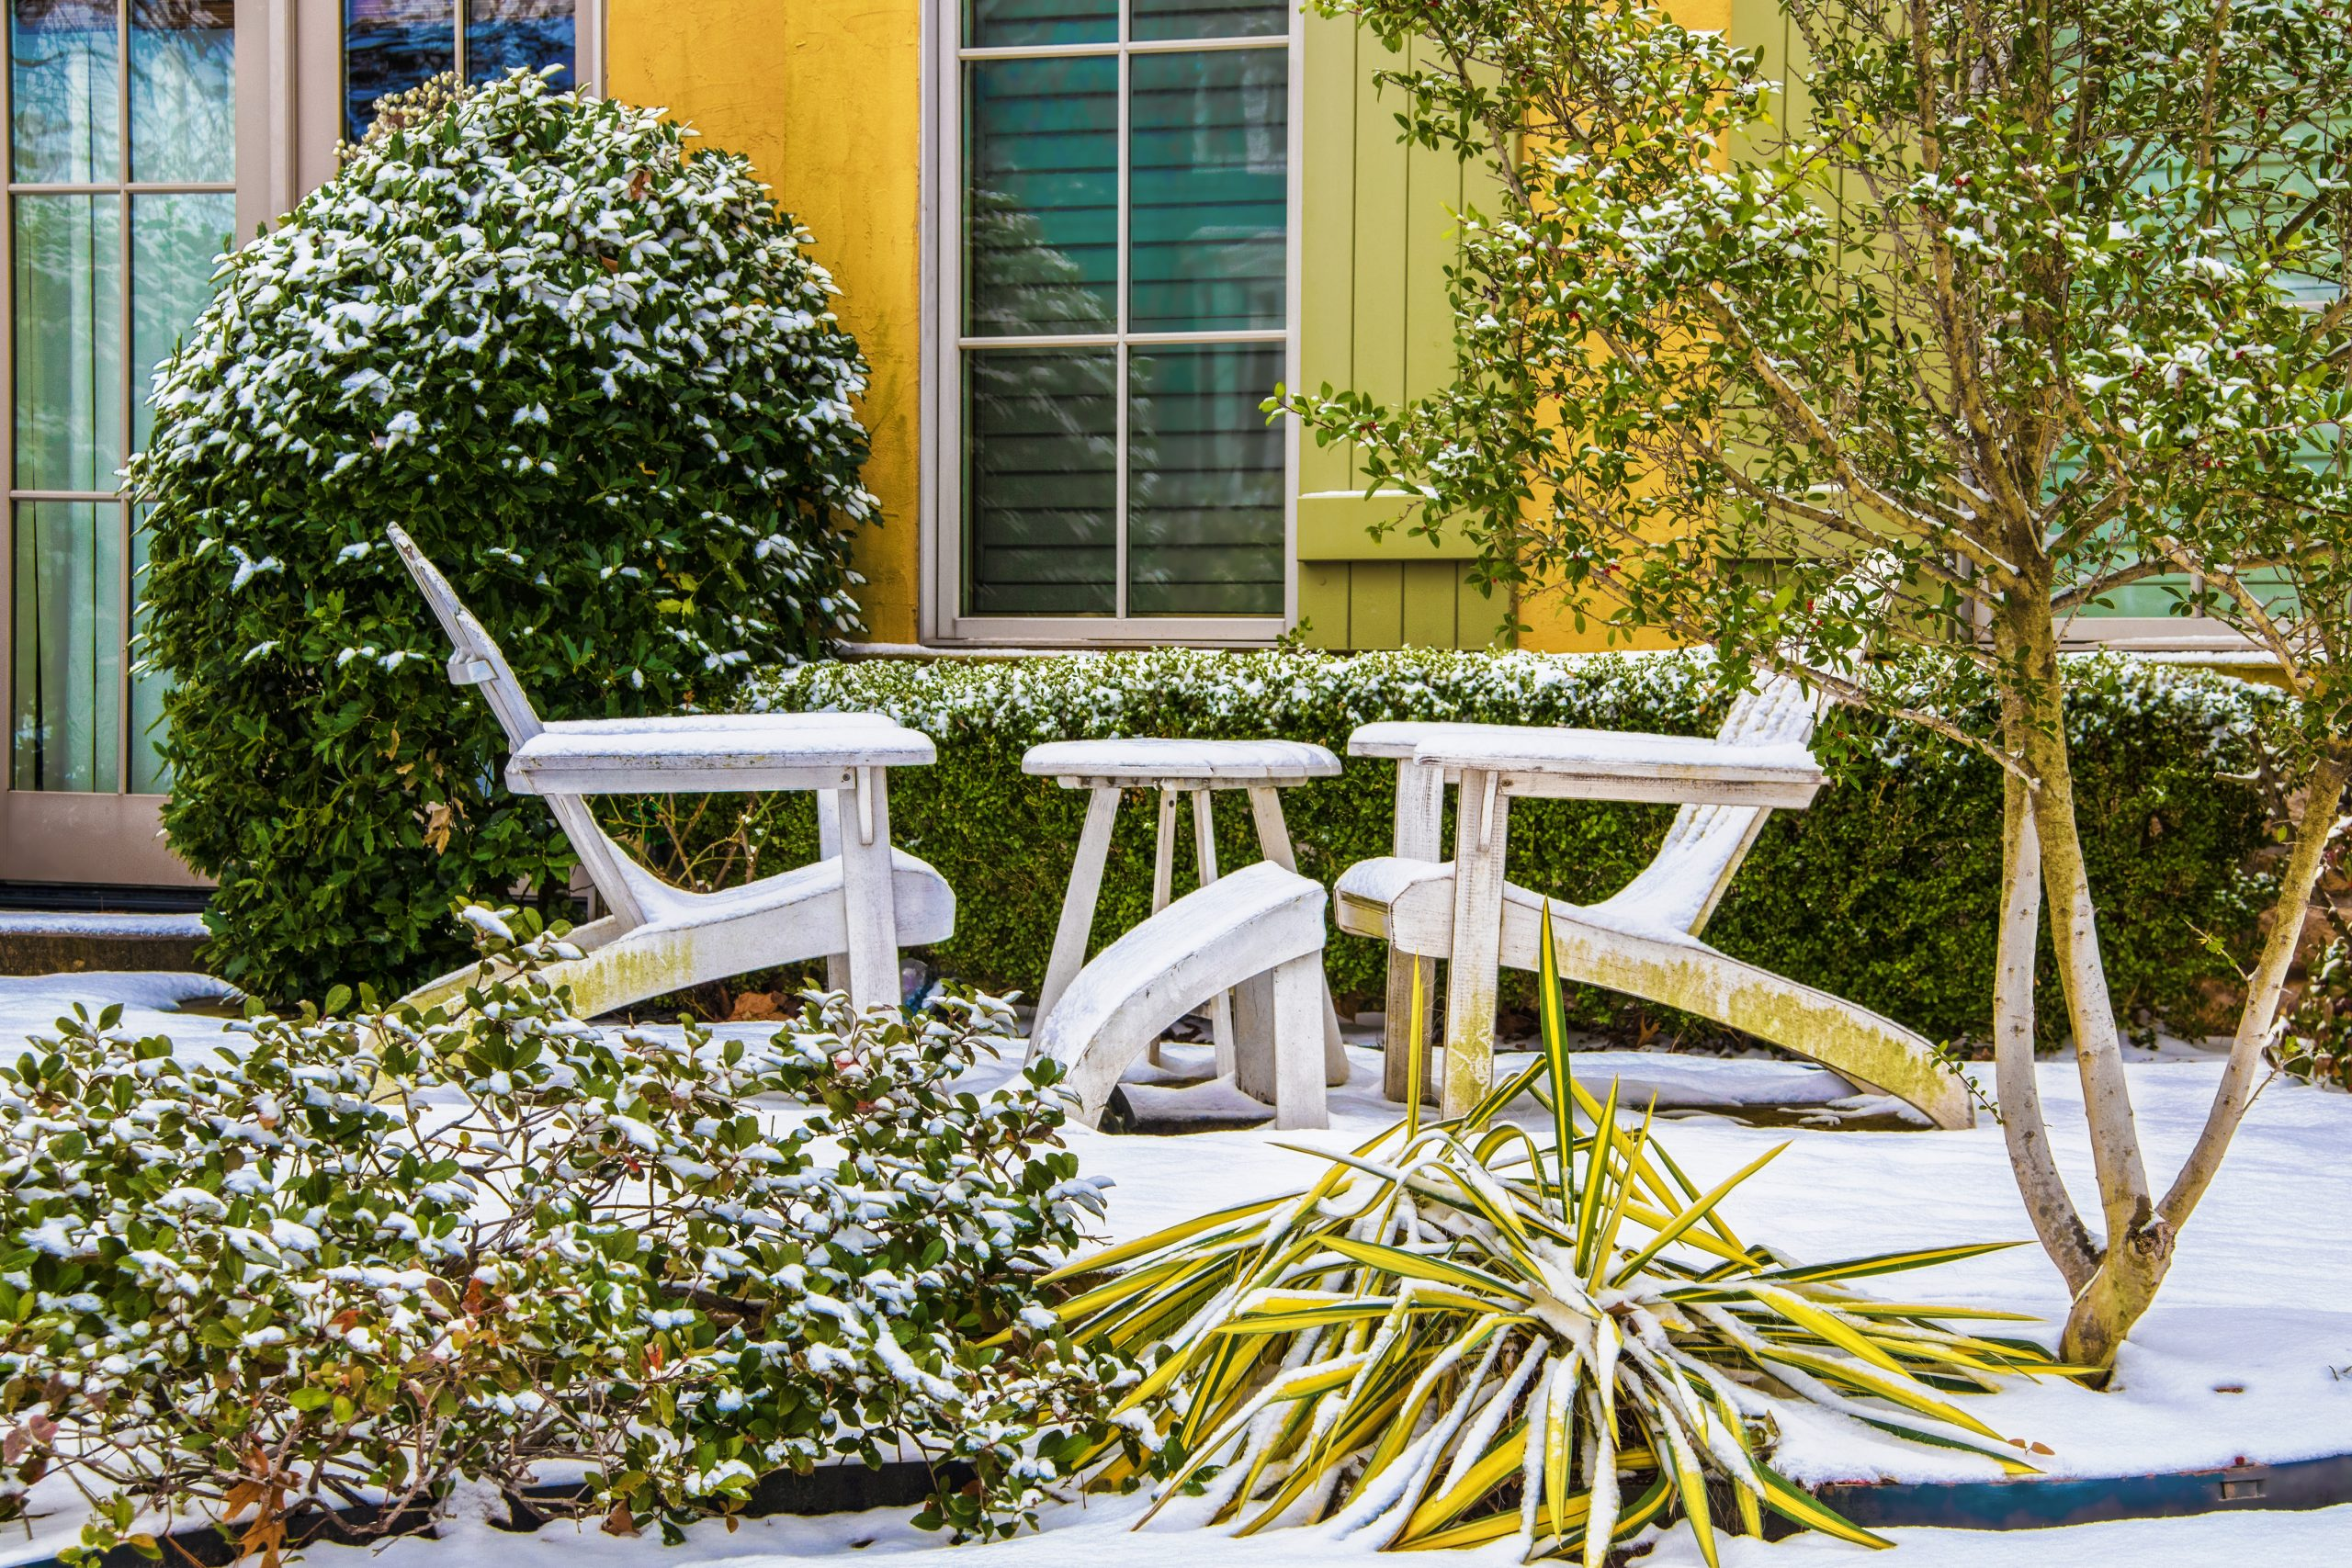 ice covered chair and table in a garden